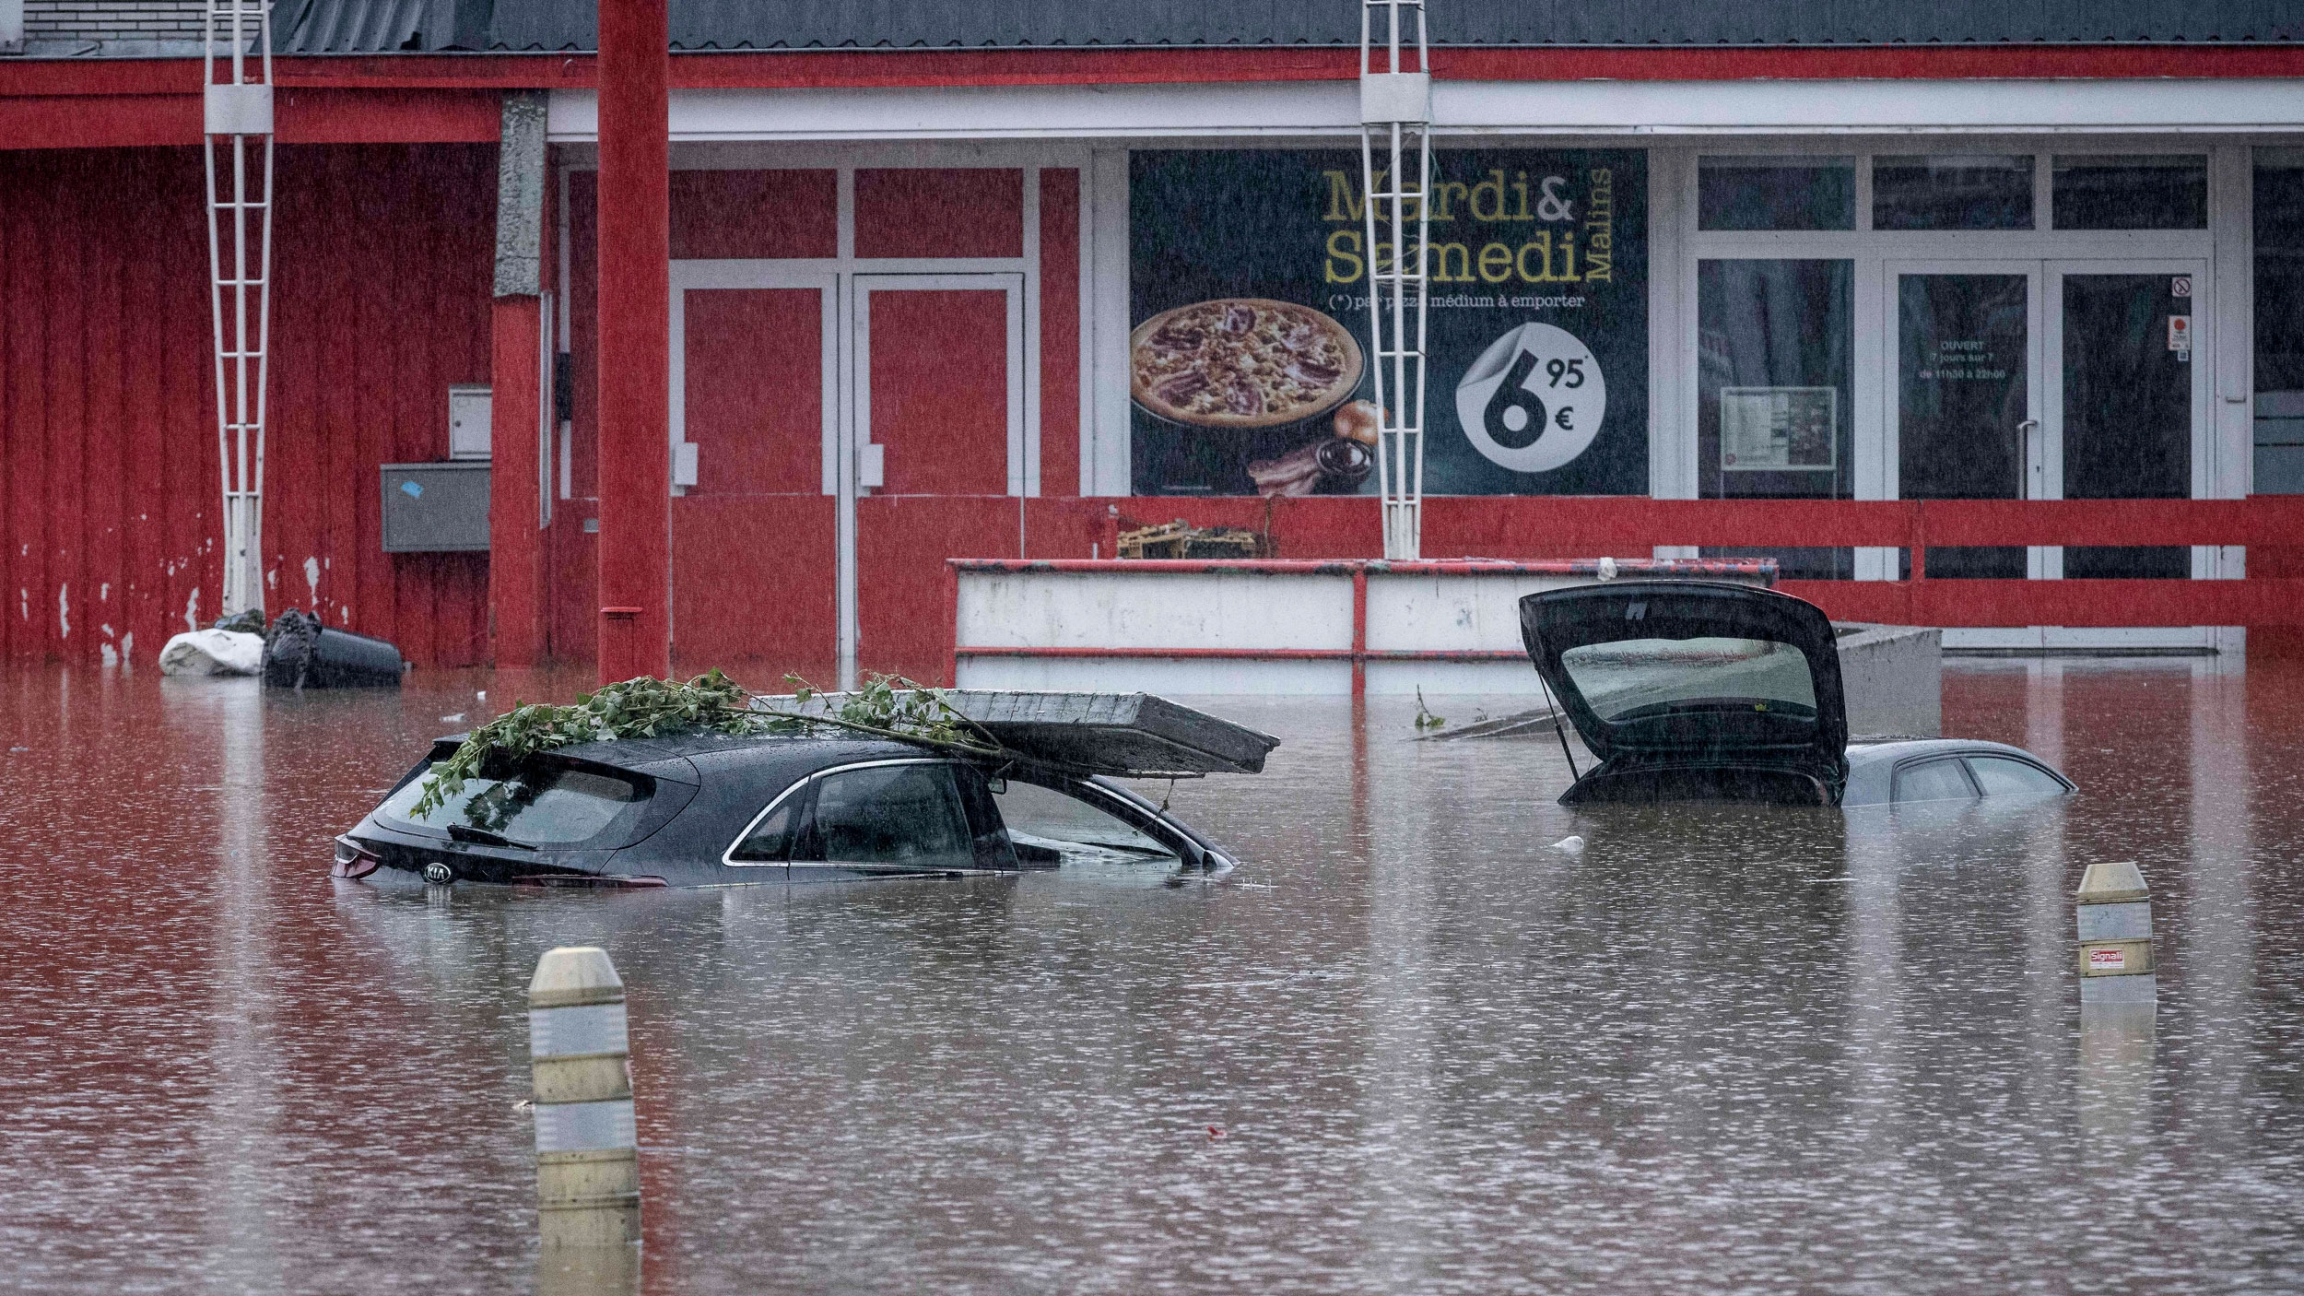 Cars are submerged in water after the Meuse River broke its banks during heavy flooding in Liege, Belgium, Thursday, July 15, 2021.